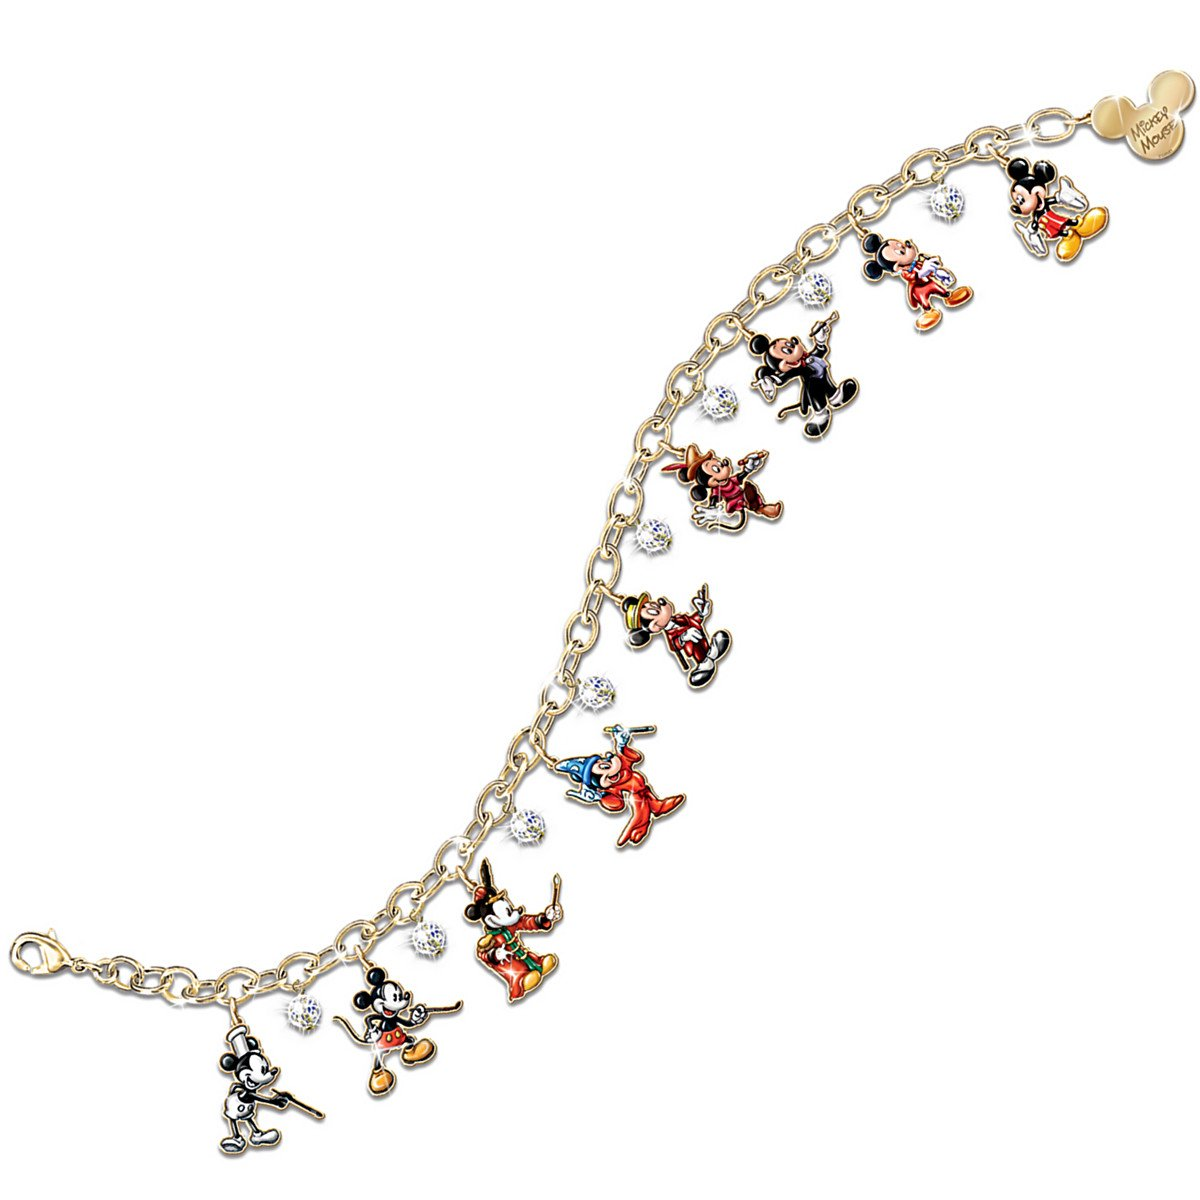 Disney Mickey Mouse Through The Years 24K Gold-Plated Charm Bracelet by The Bradford Exchange